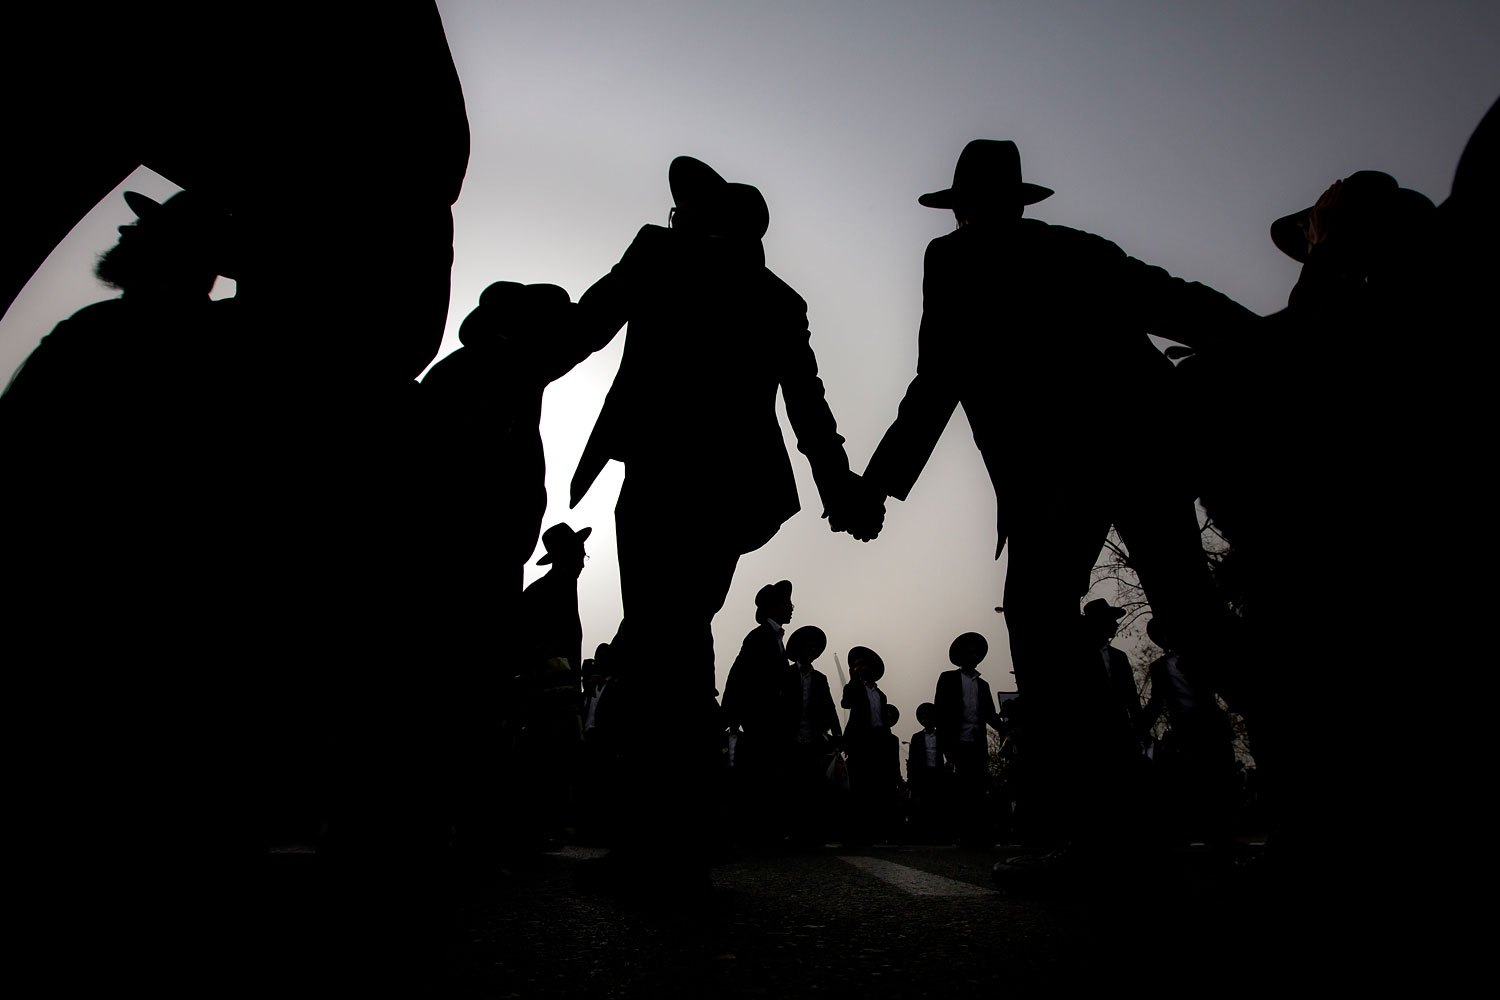 Ultra-Orthodox Jewish men dance at a rally in a massive show of force against plans to force them to serve in the Israeli military, blocking roads and paralyzing the city of Jerusalem, March 2, 2014.